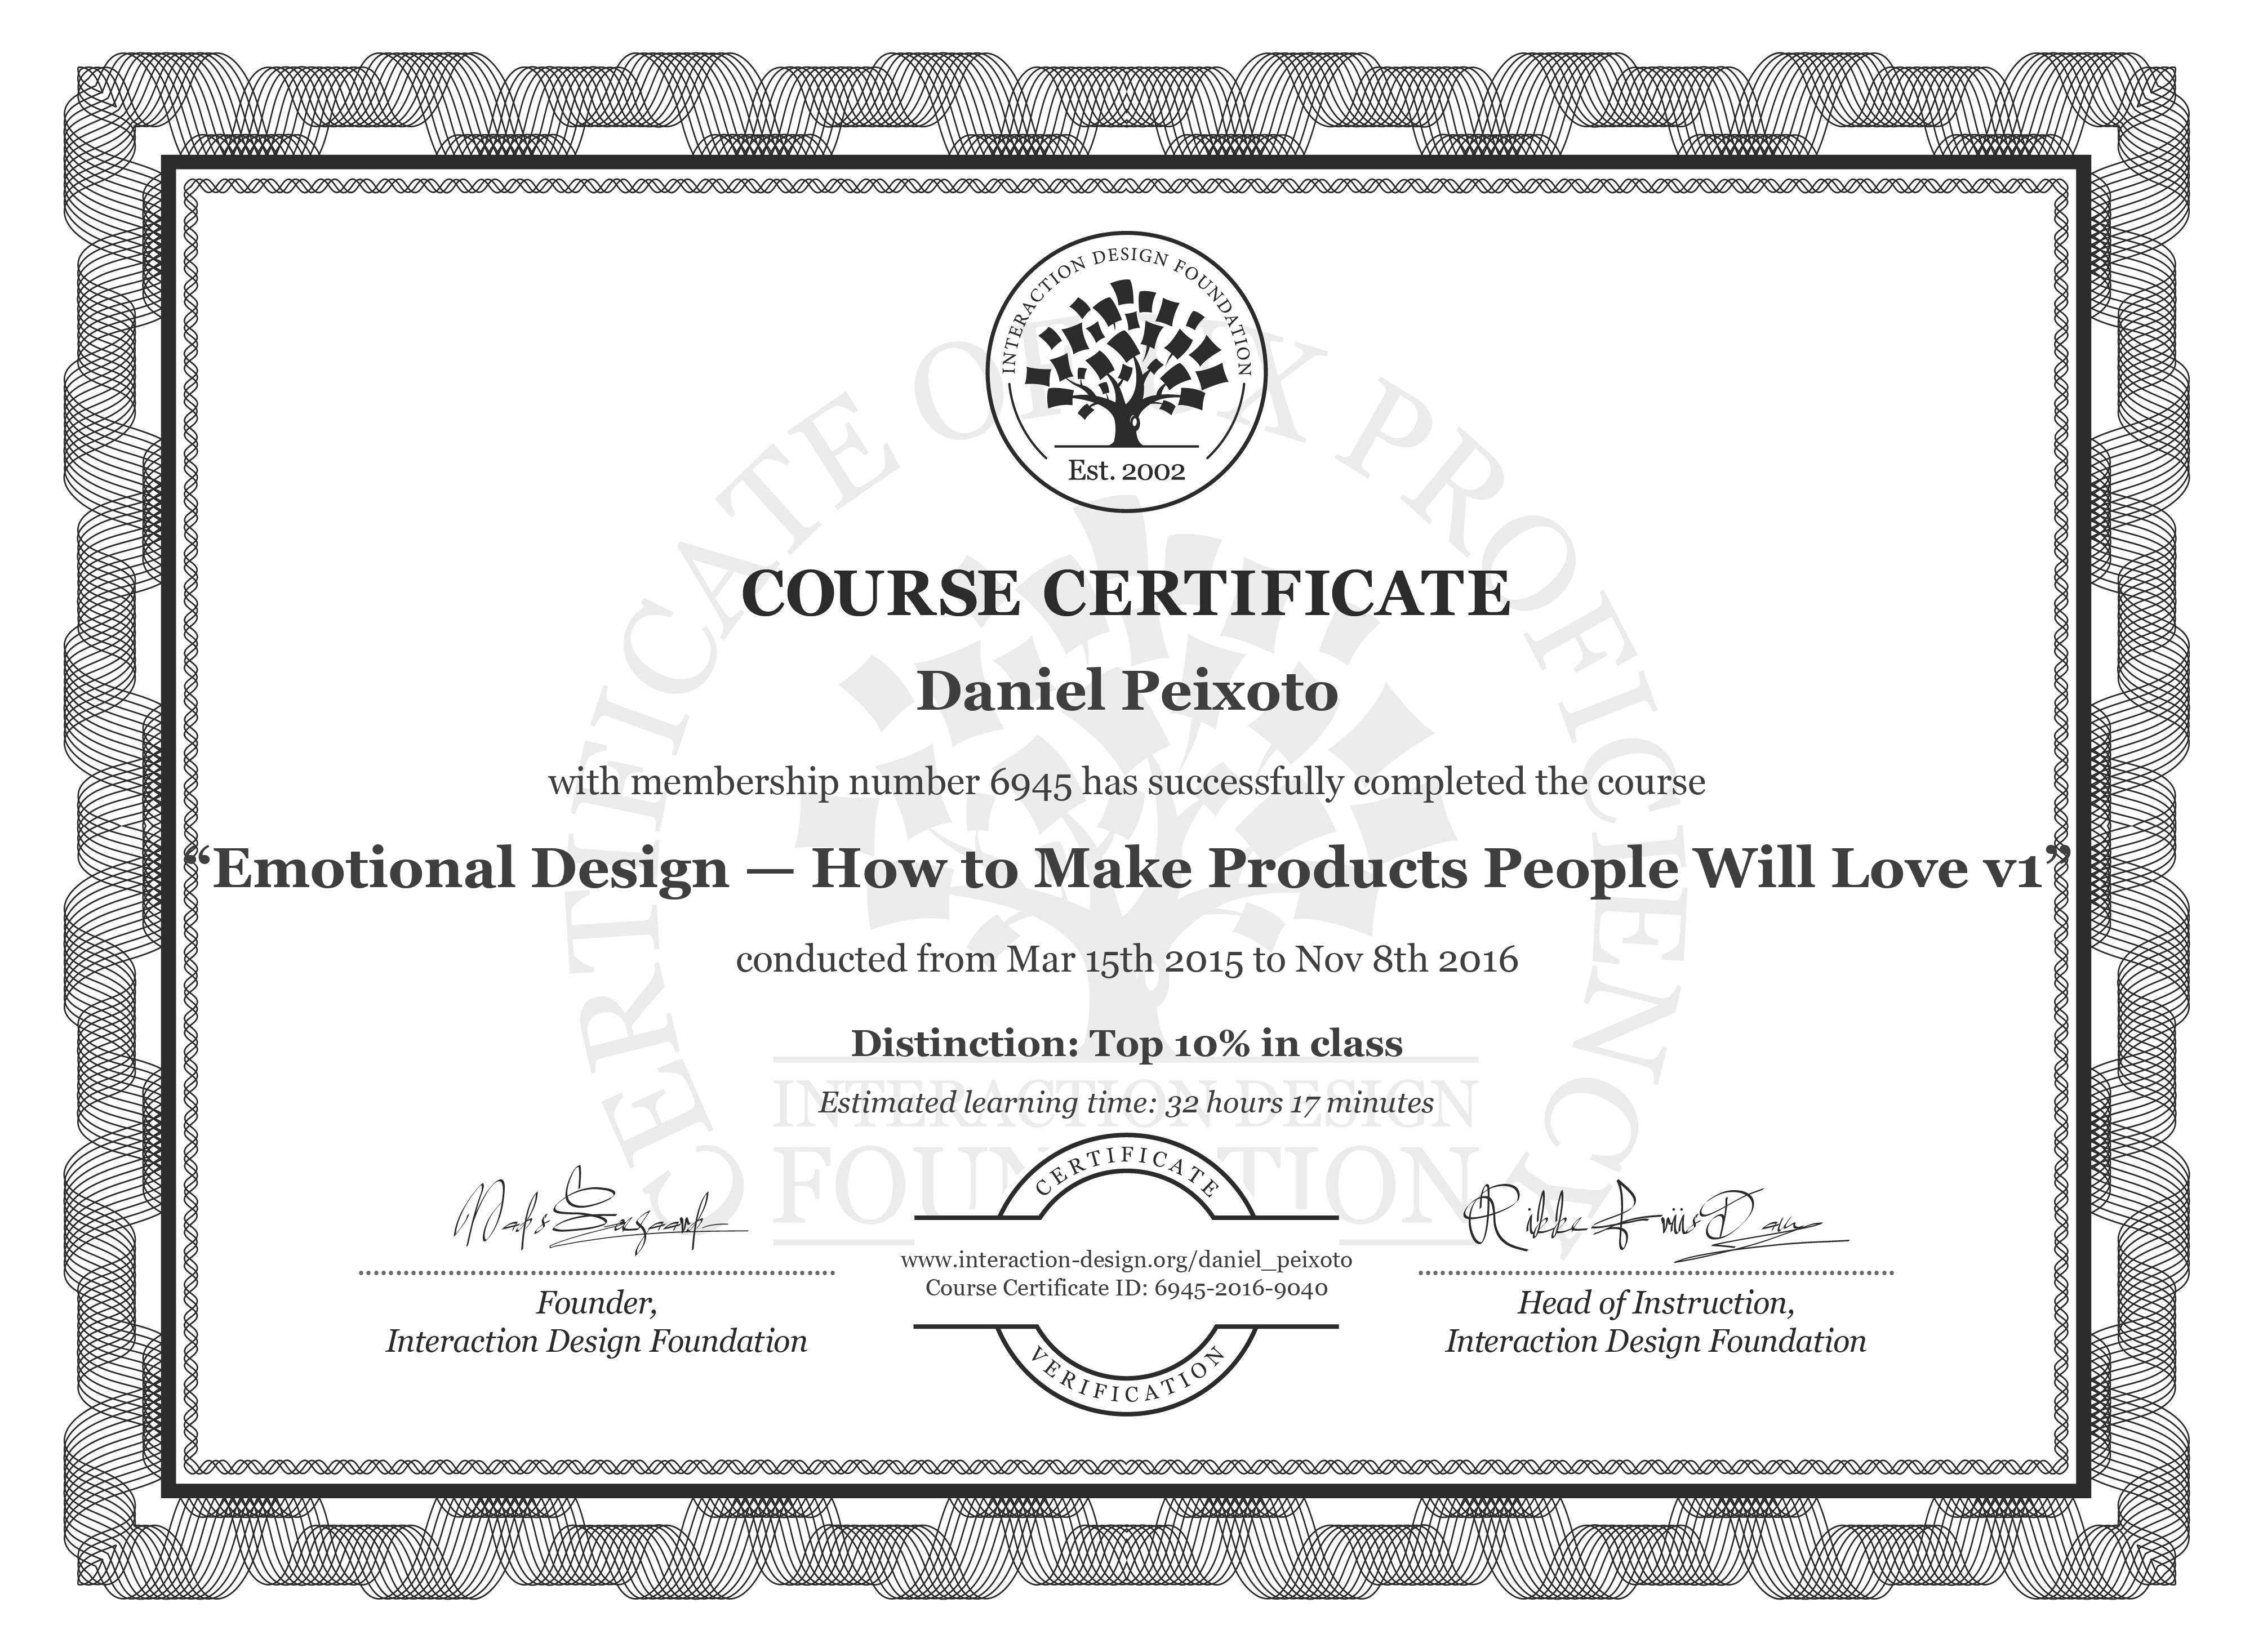 Daniel Peixoto's Course Certificate: Emotional Design: How to Make Products People Will Love